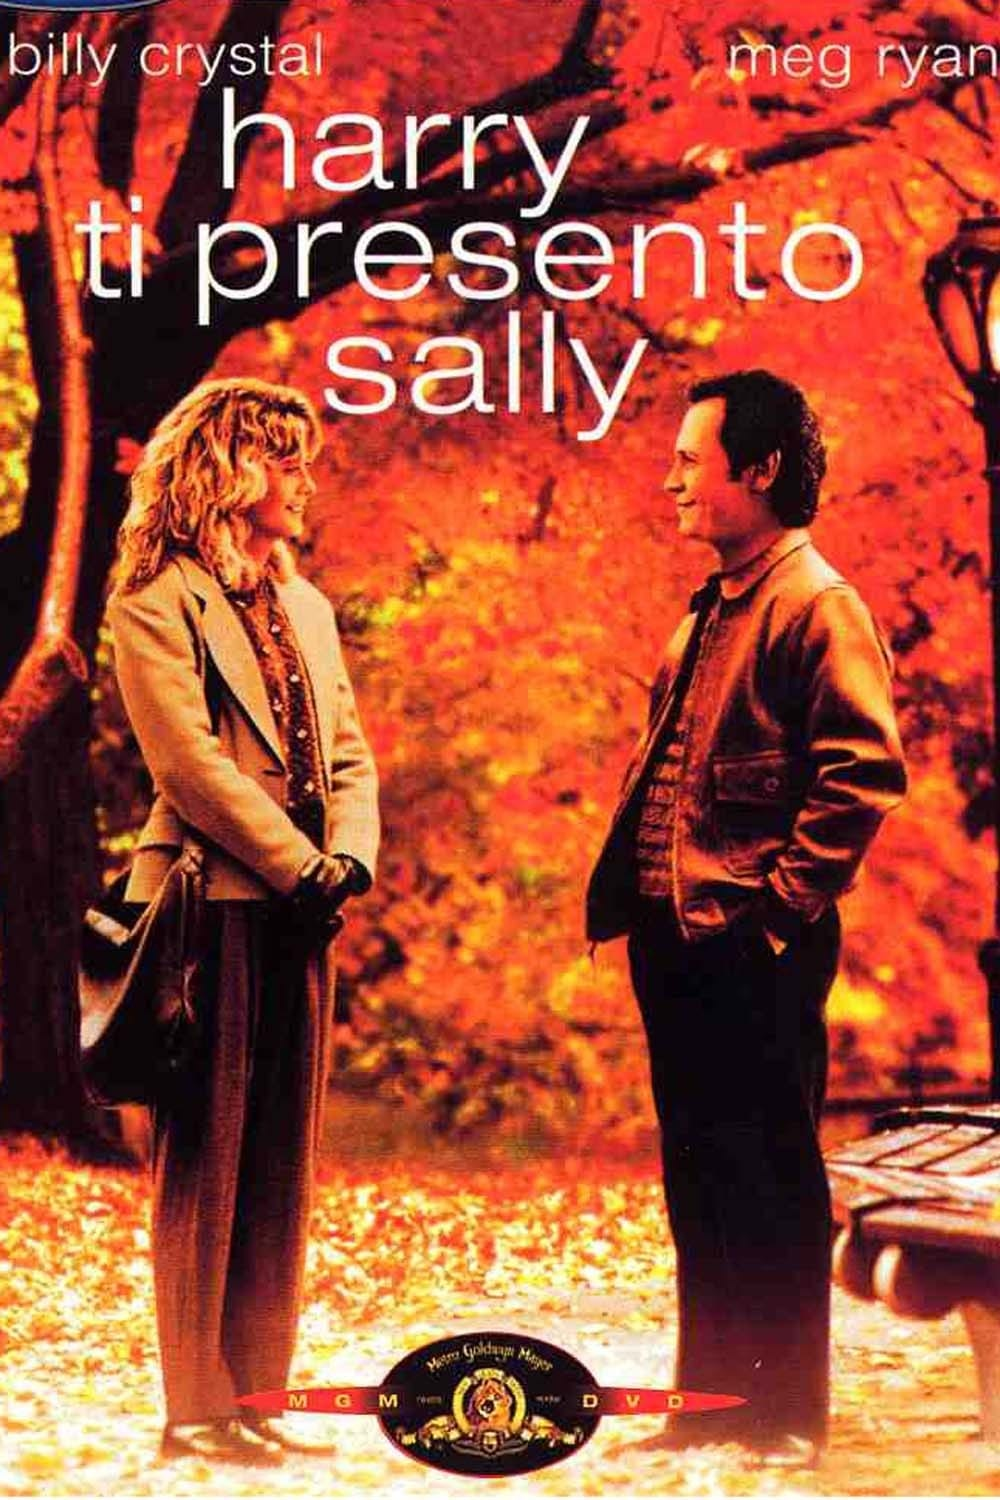 Quand harry rencontre sally streaming gratuit